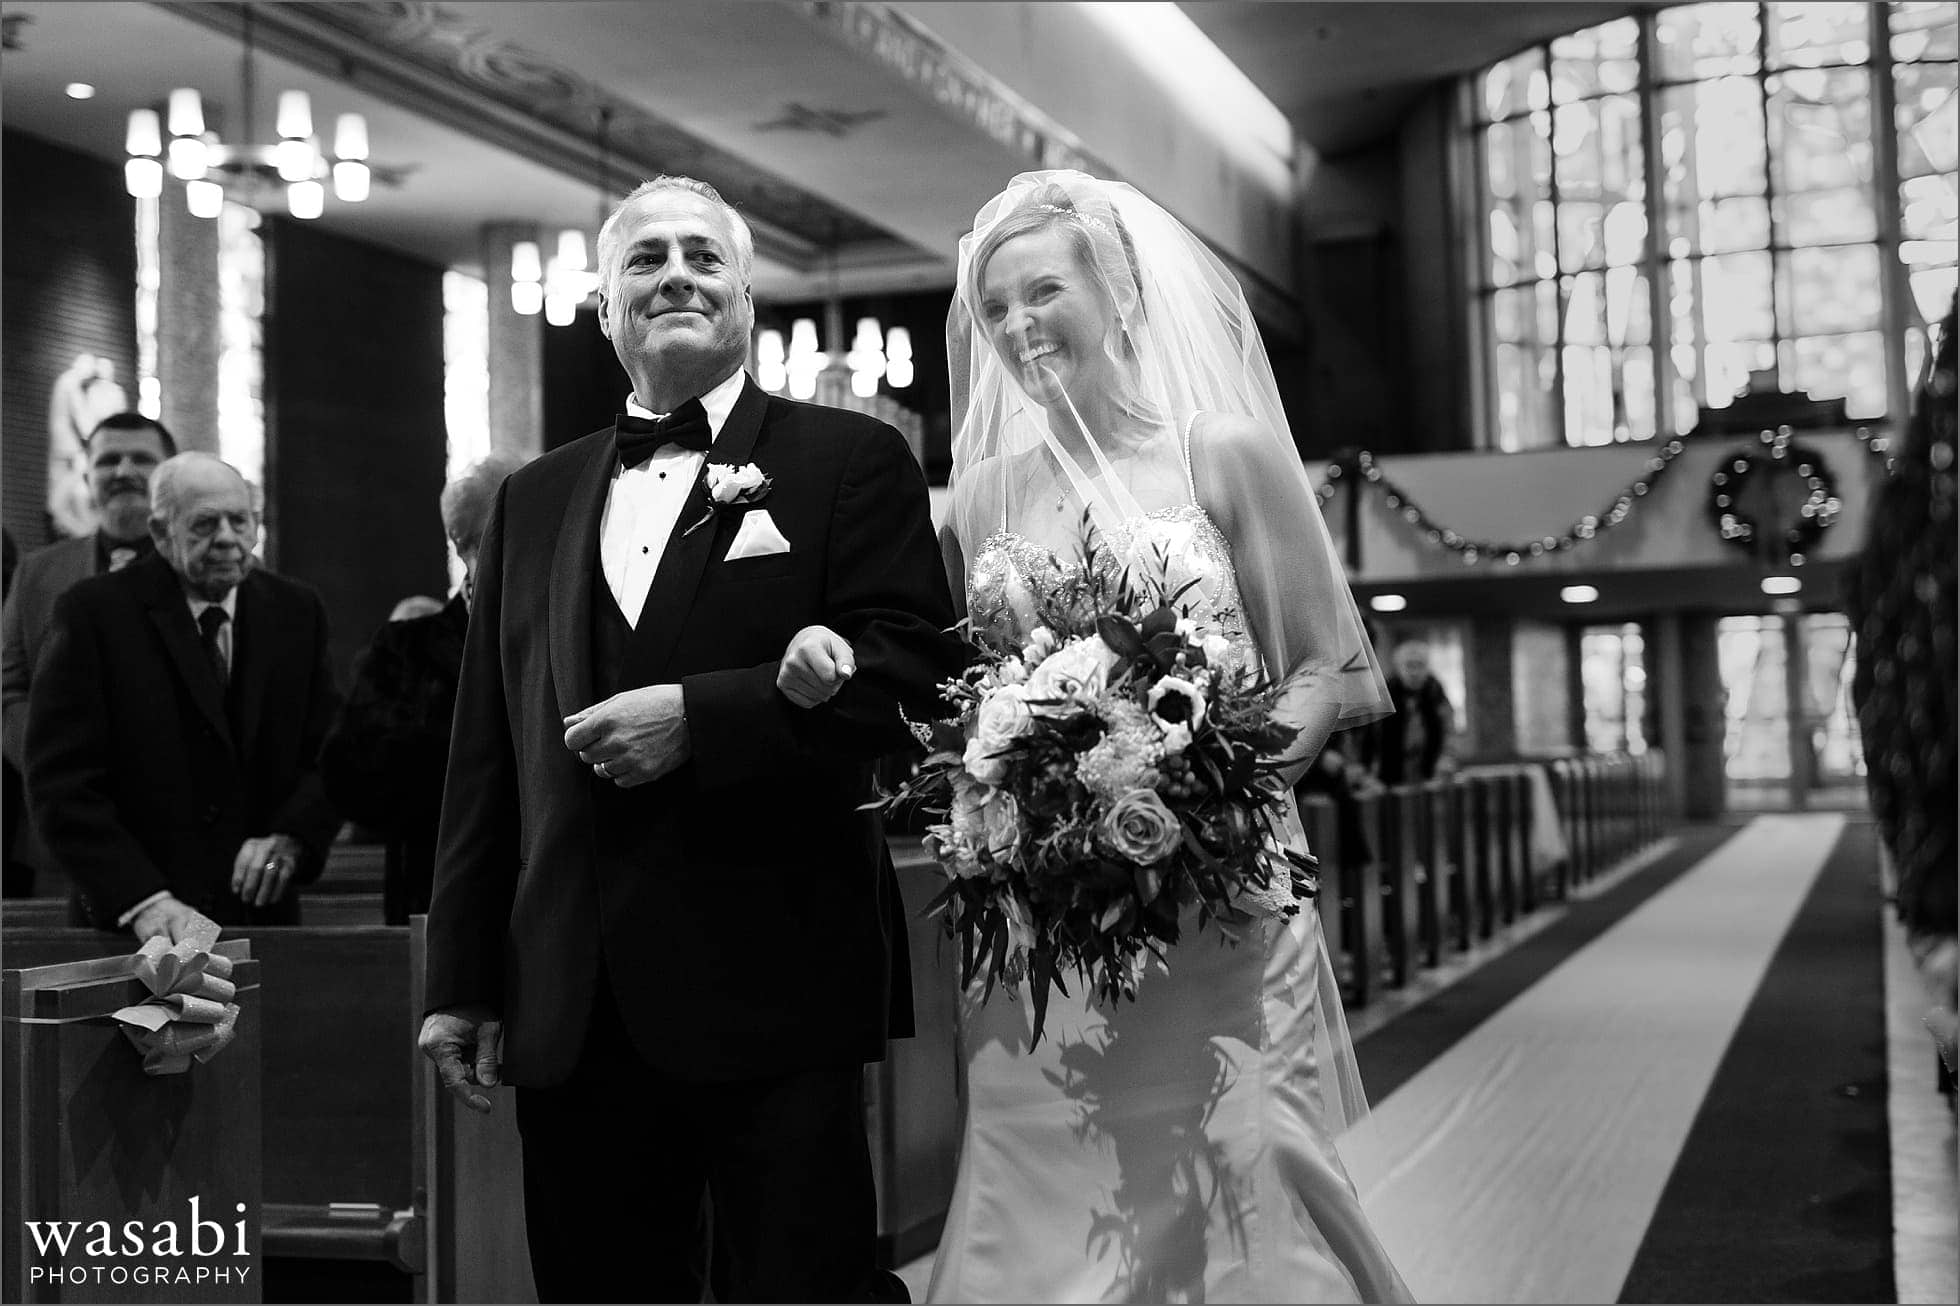 bride walks down the aisle with father during wedding ceremony at Immaculate Conception Catholic Church in Chicago